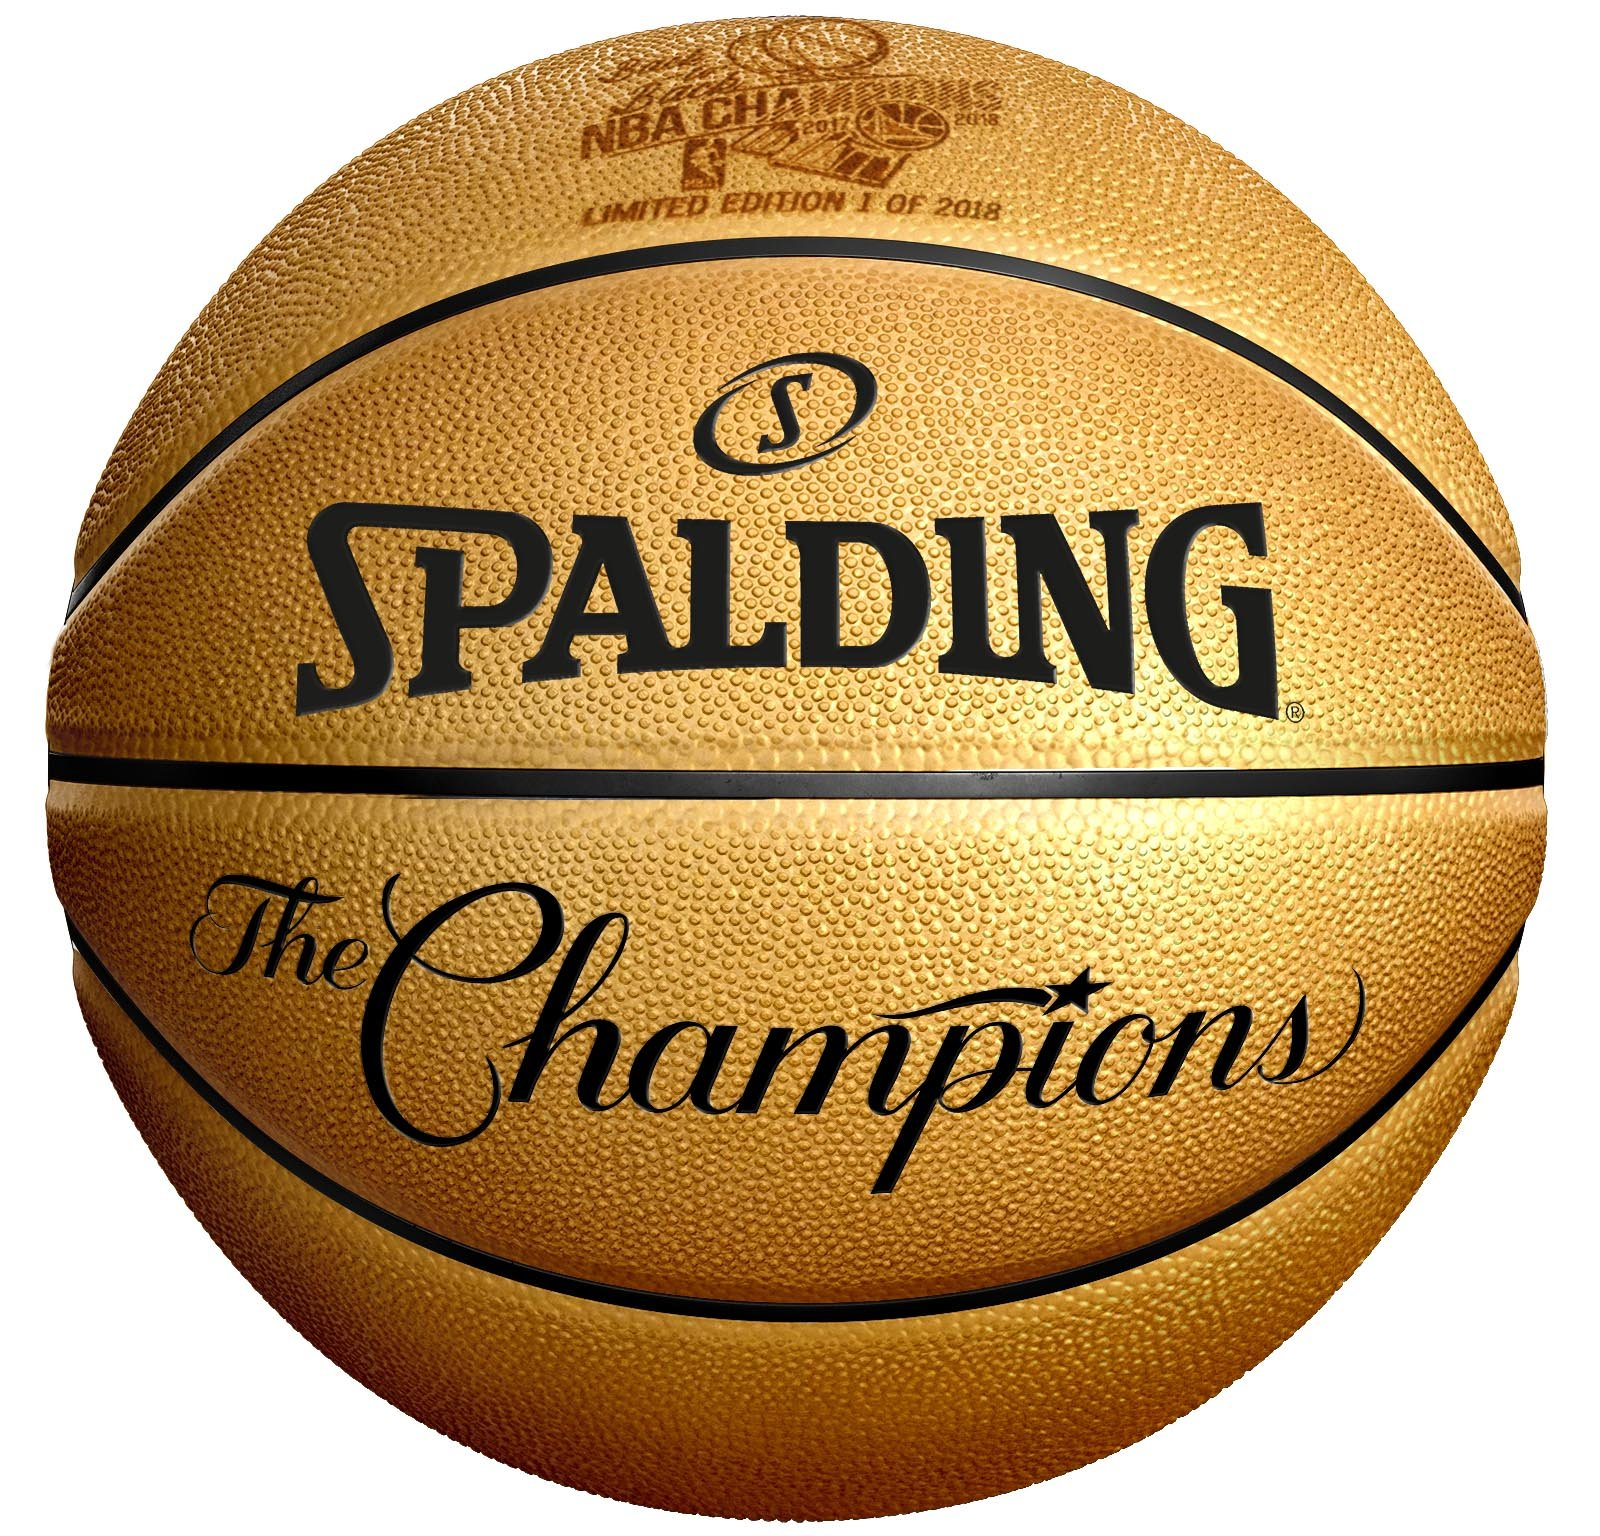 NBA Golden State Warriors Unisex Spaldingbasketball, Gold, One Size by Spalding